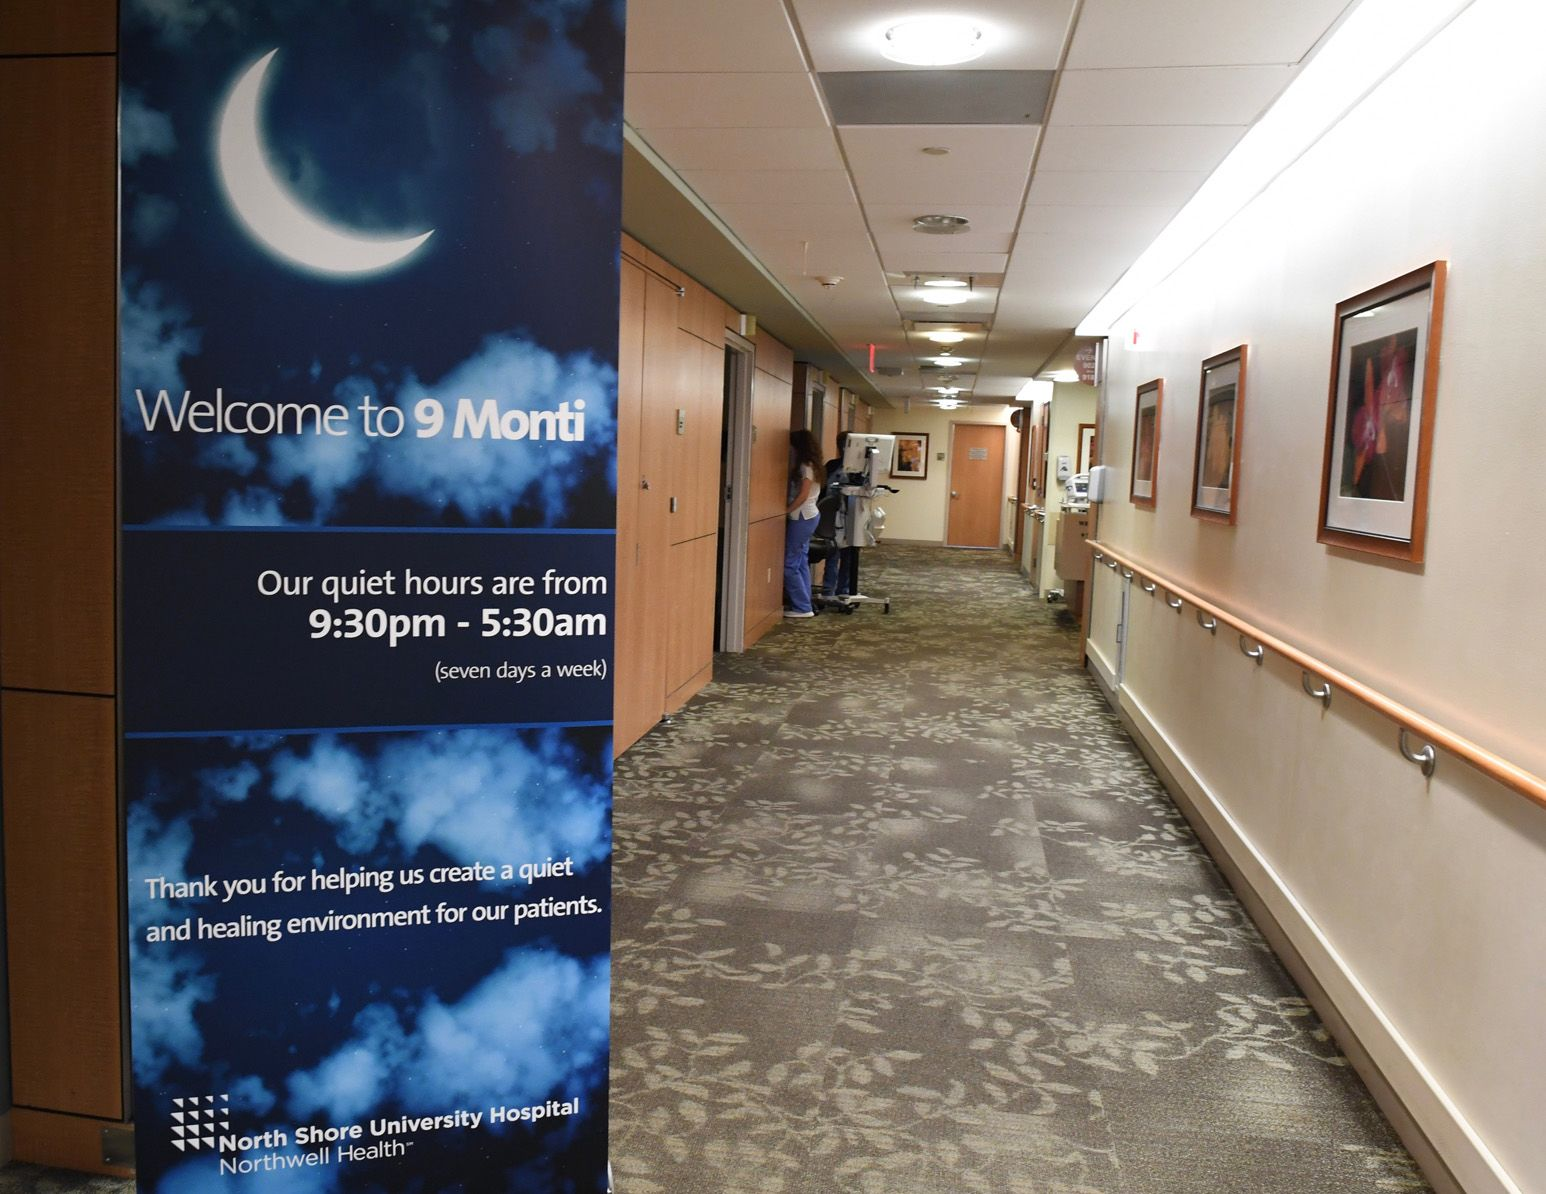 At North Shore University Hospital, signs remind visitors of hospital quiet hours that run from 9:30 p.m. to 5:30 a.m., during which voices are kept low, cell phones are silenced and nurses bundle care in order to disturb patients as little as possible.